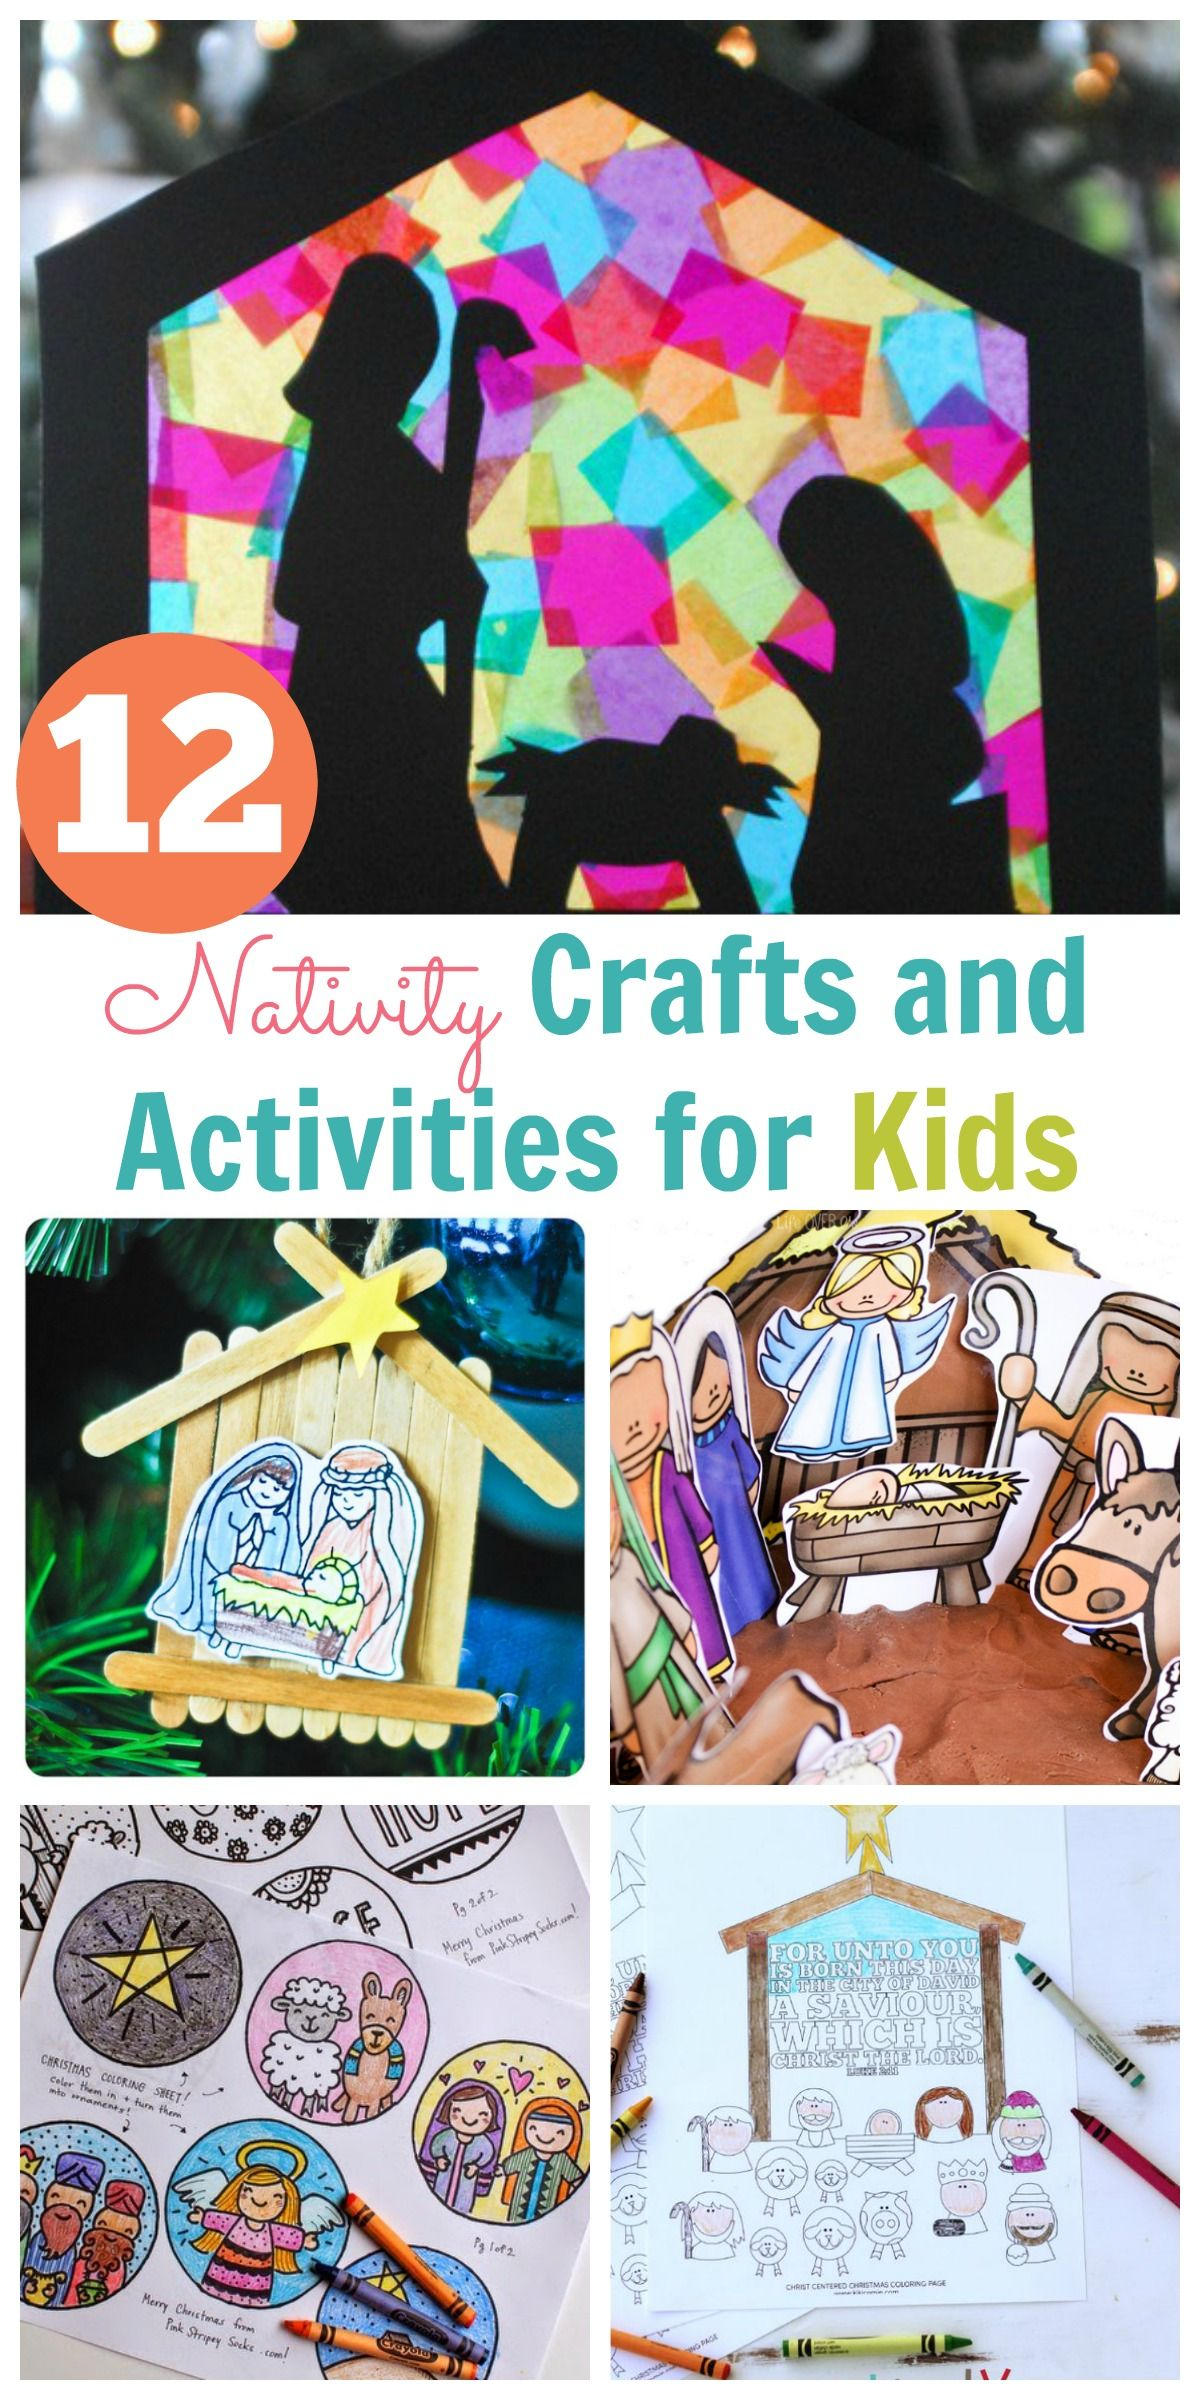 It's Christmas time and I always love finding ideas that help you point your family's hearts to Jesus. Today I am bringing you a collection of 12 simple, fun crafts, printables, and activities that celebrate the nativity. Any of these ideas would work well at a Happy Birthday Jesus party (like the one we did HERE …